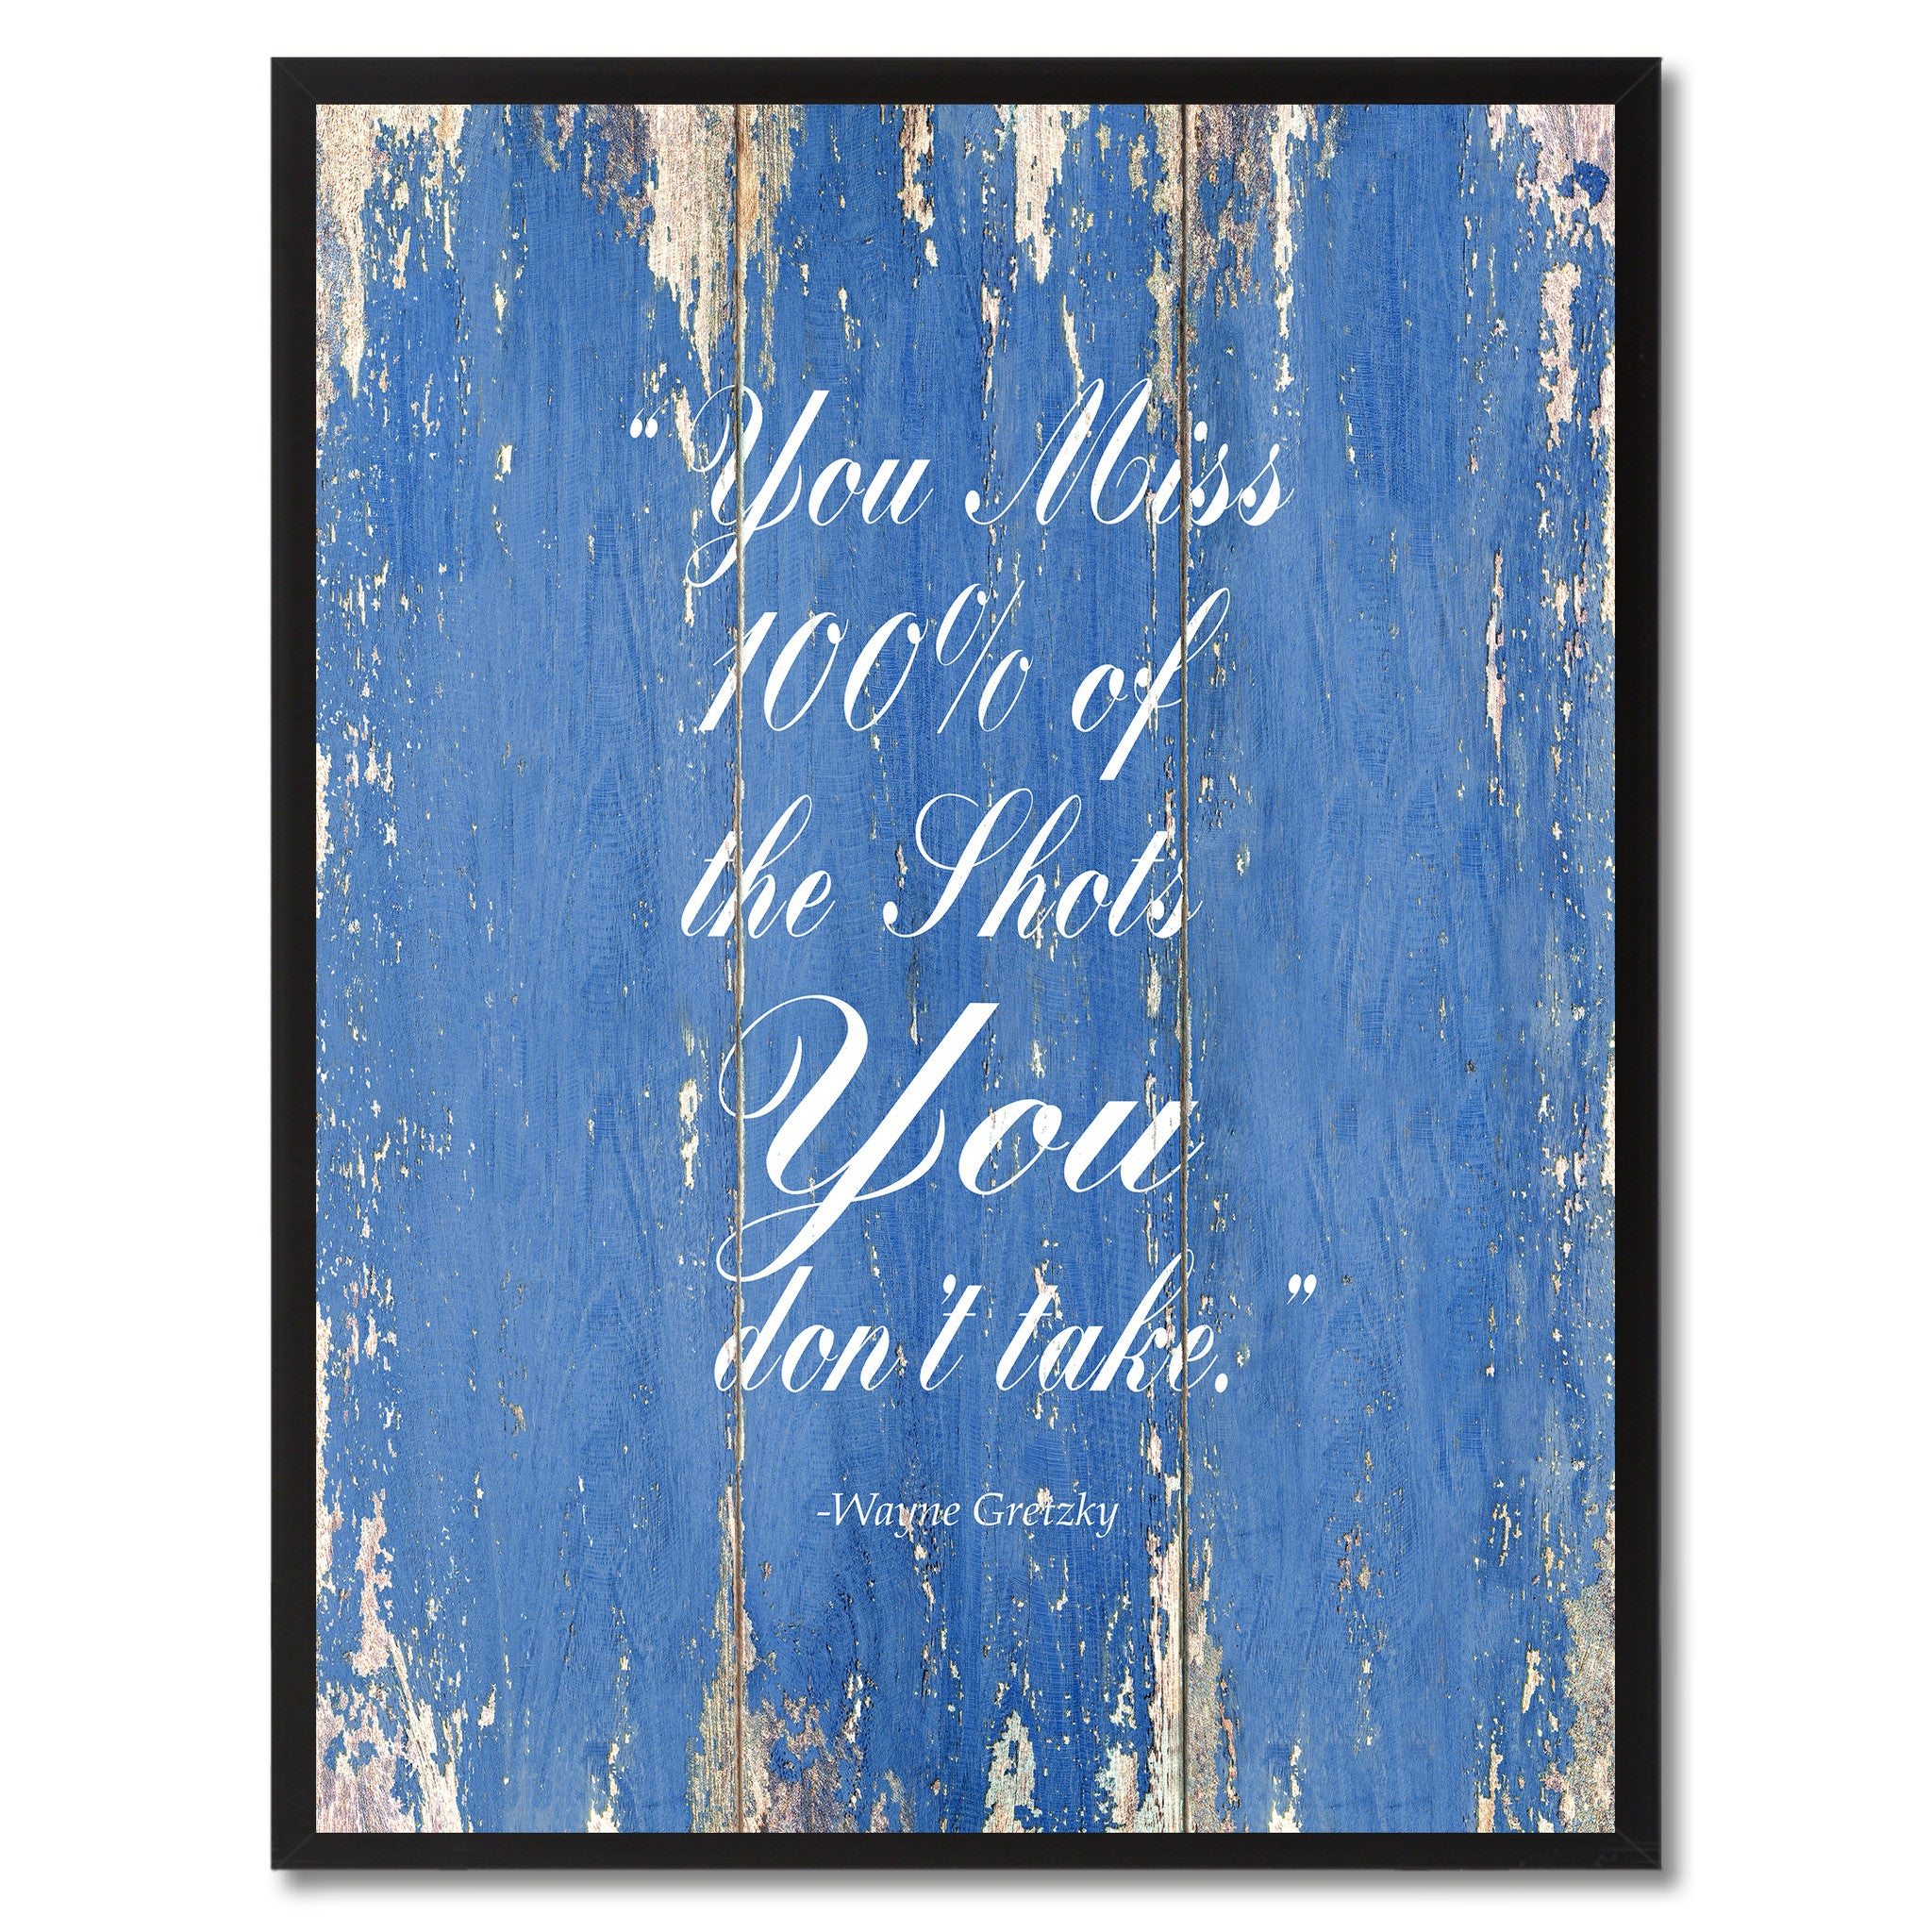 You miss 100% of the shots you don't take - Wayne Gretzky Motivation Quote Canvas Print Picture Frame Home Decor Wall Art Gifts, Blue